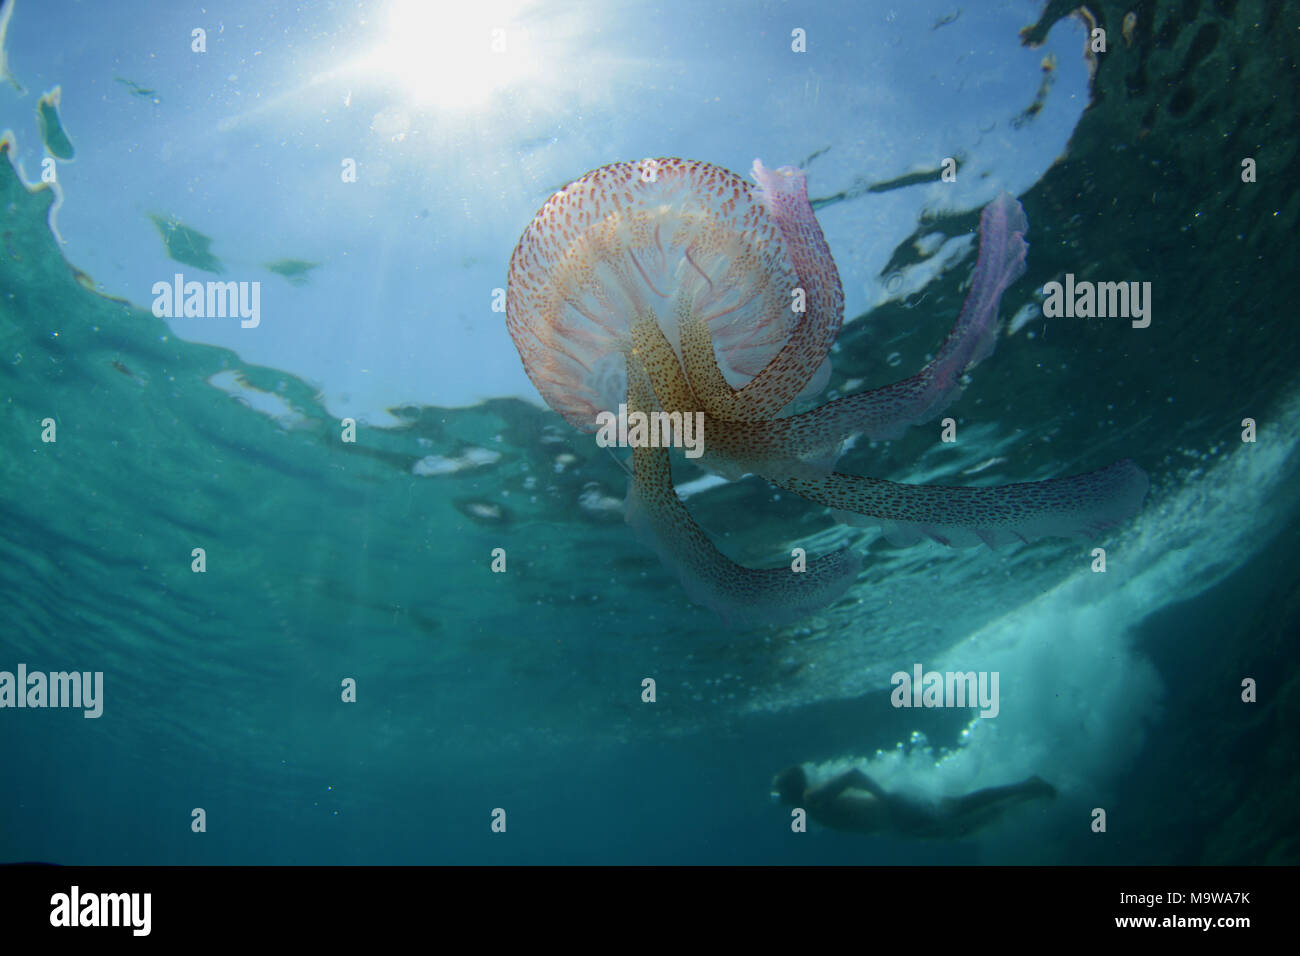 Mauve jellyfish underwater and person diving from cliffs, Menorca - Stock Image